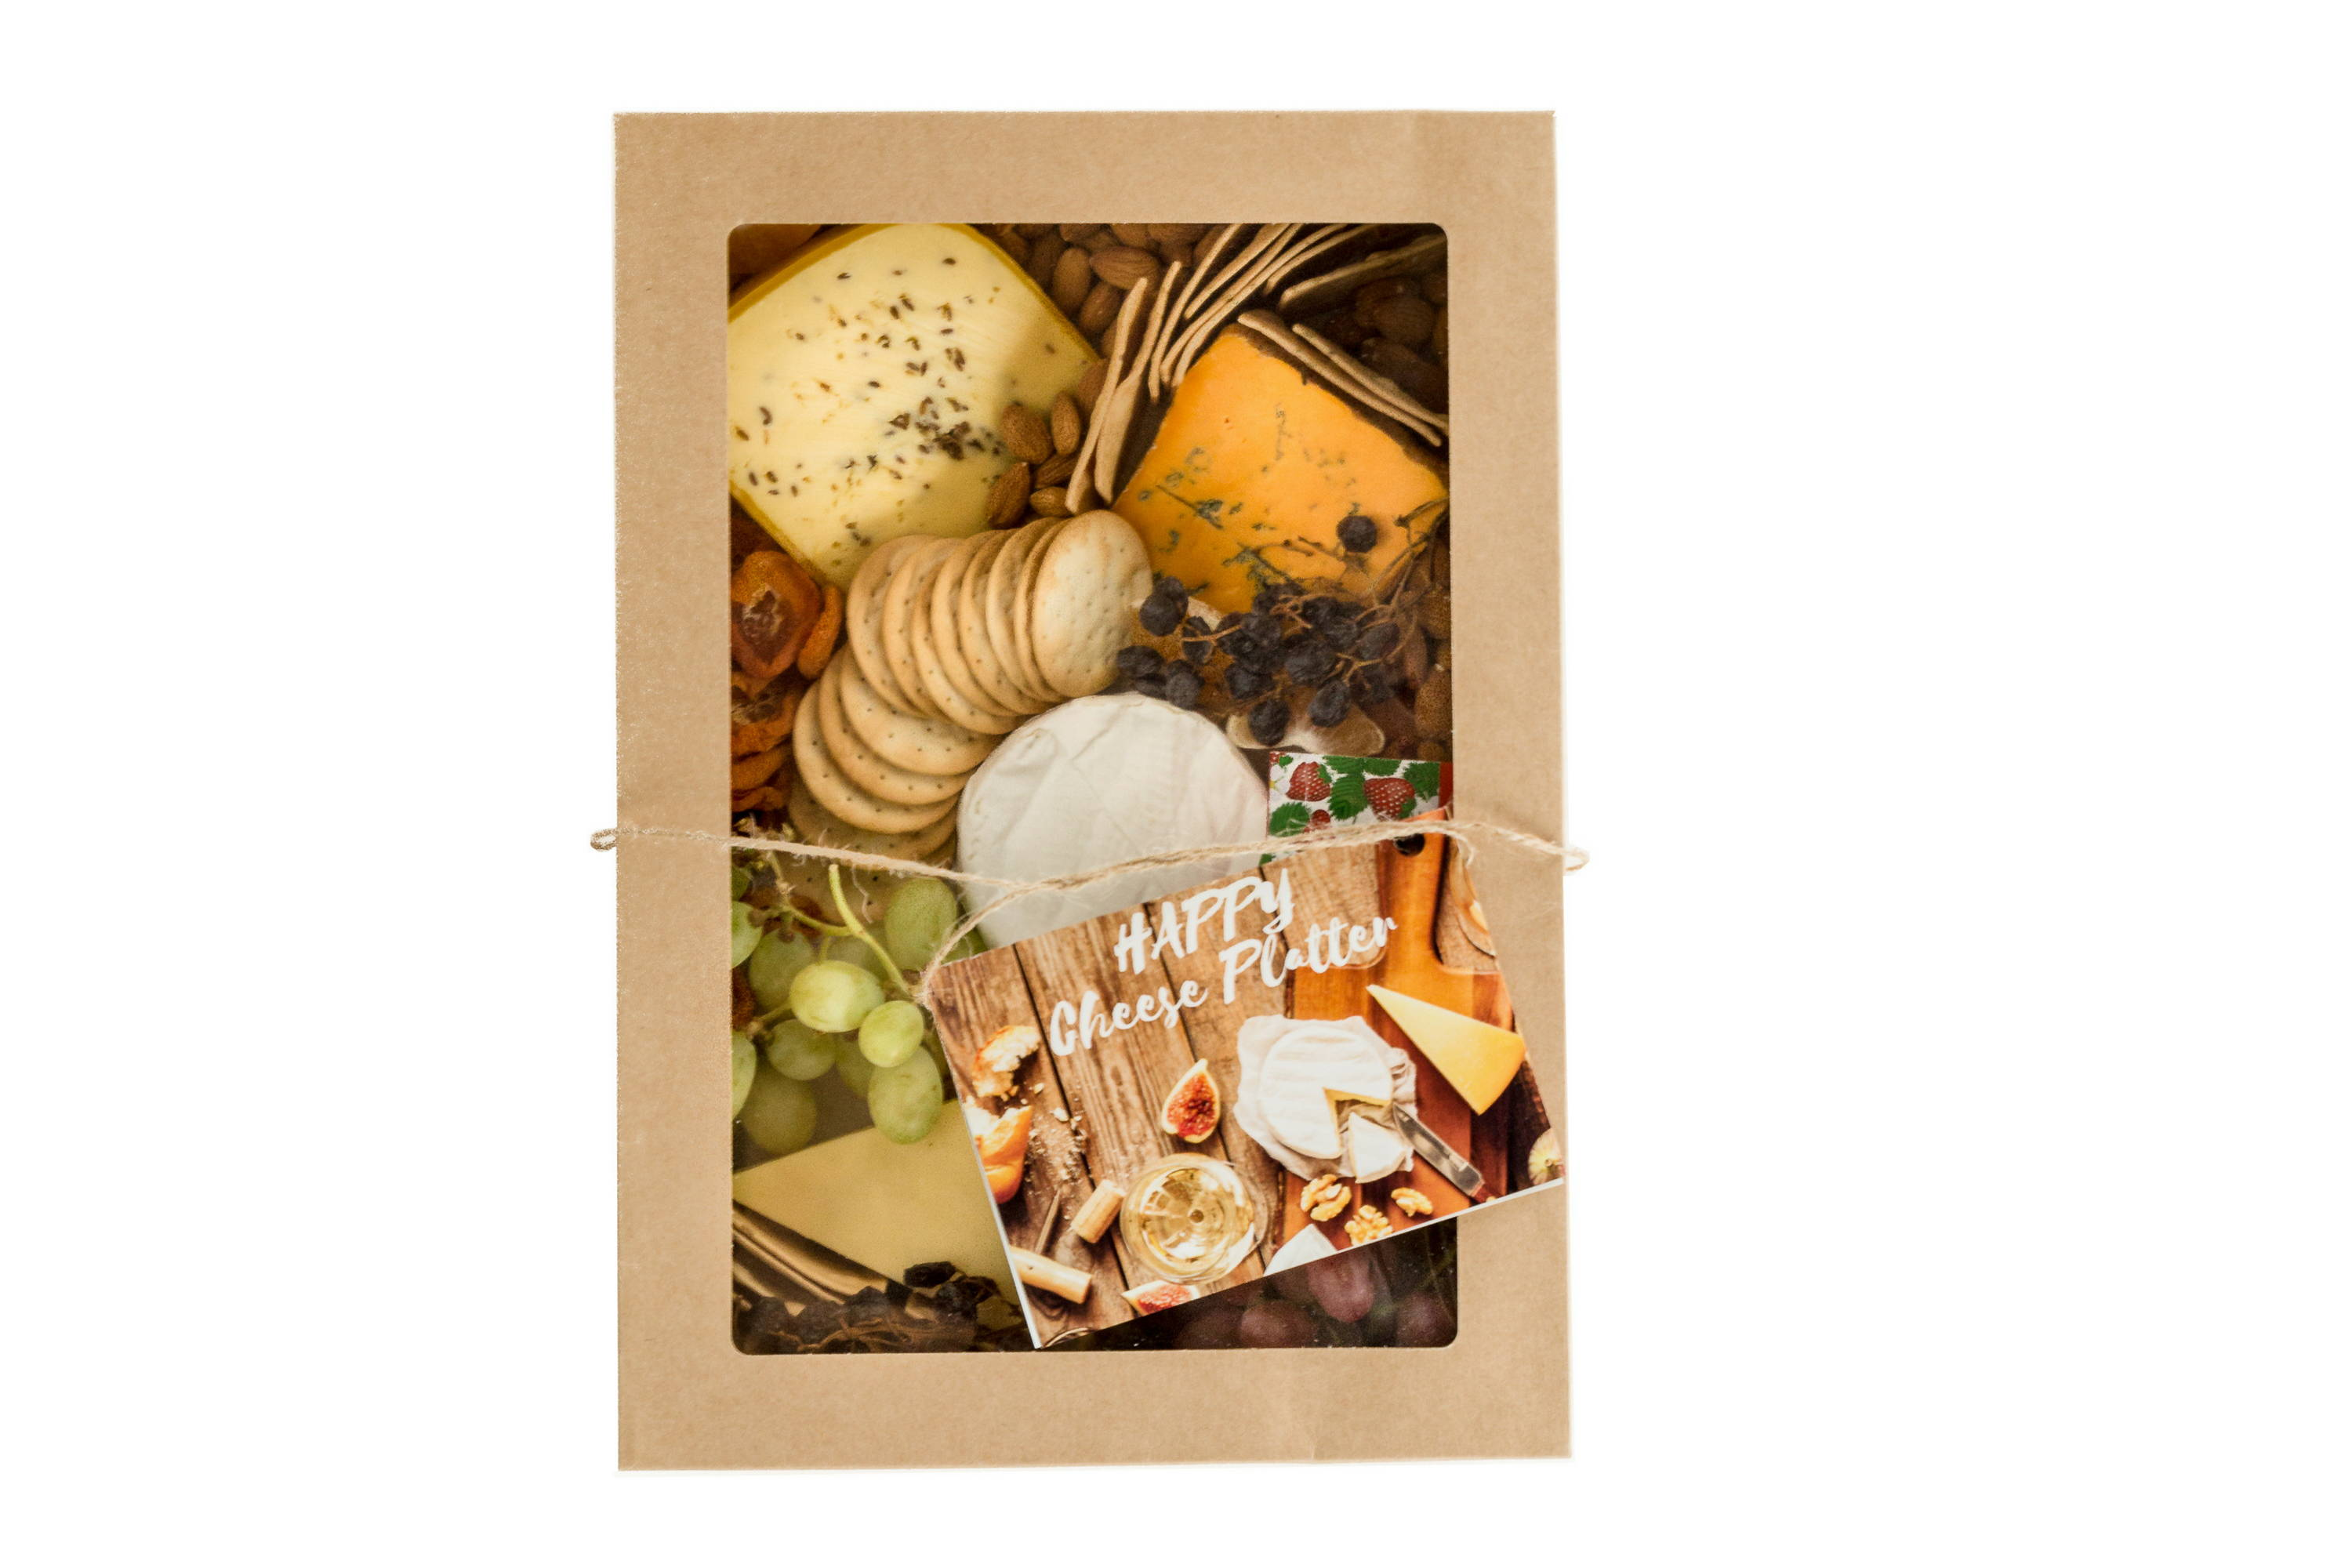 Australian cheese platter delivery box